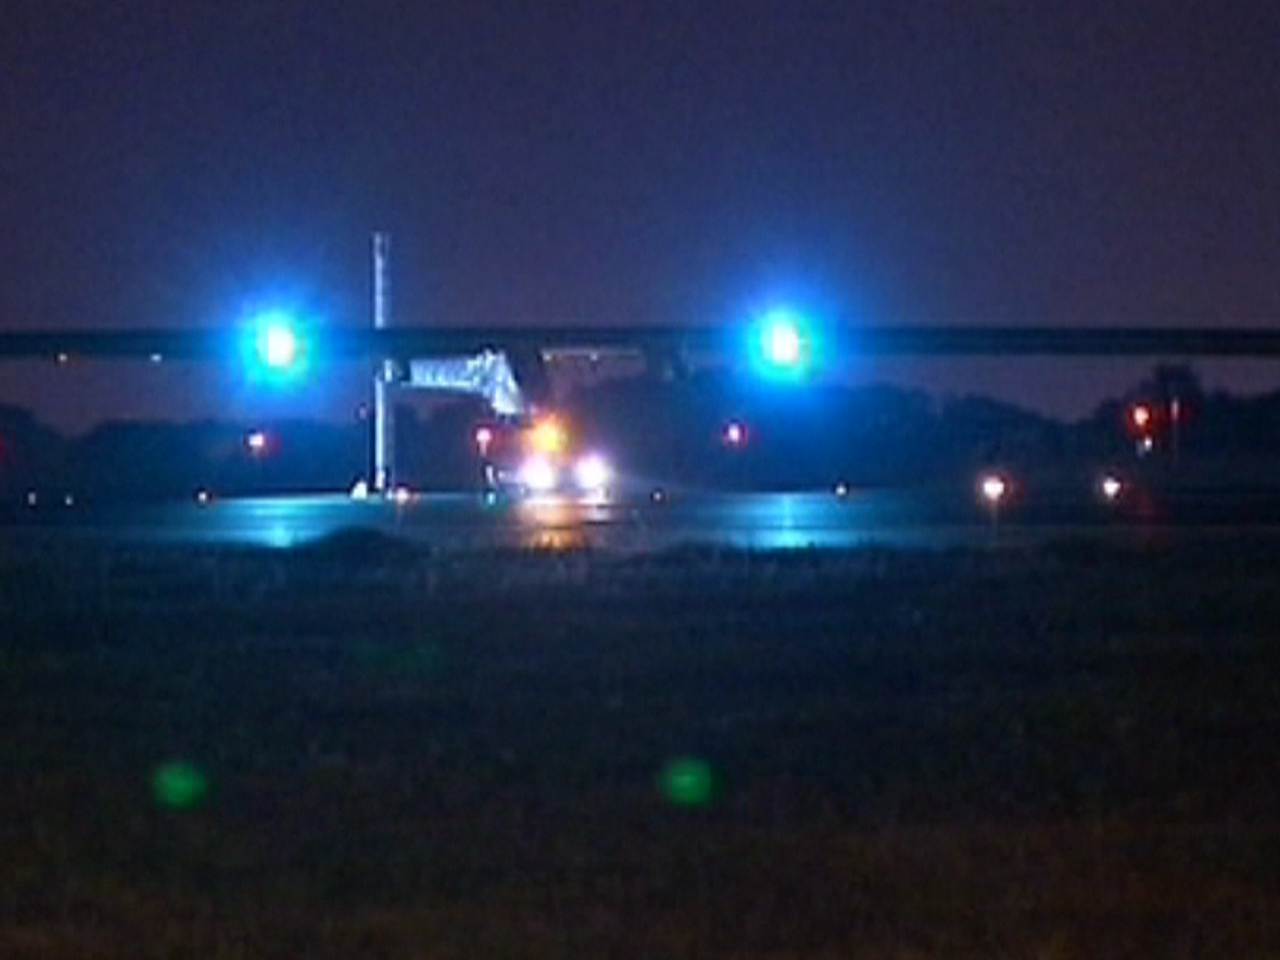 Solar Impulse plane ends American odyssey with fears, tears and cheers